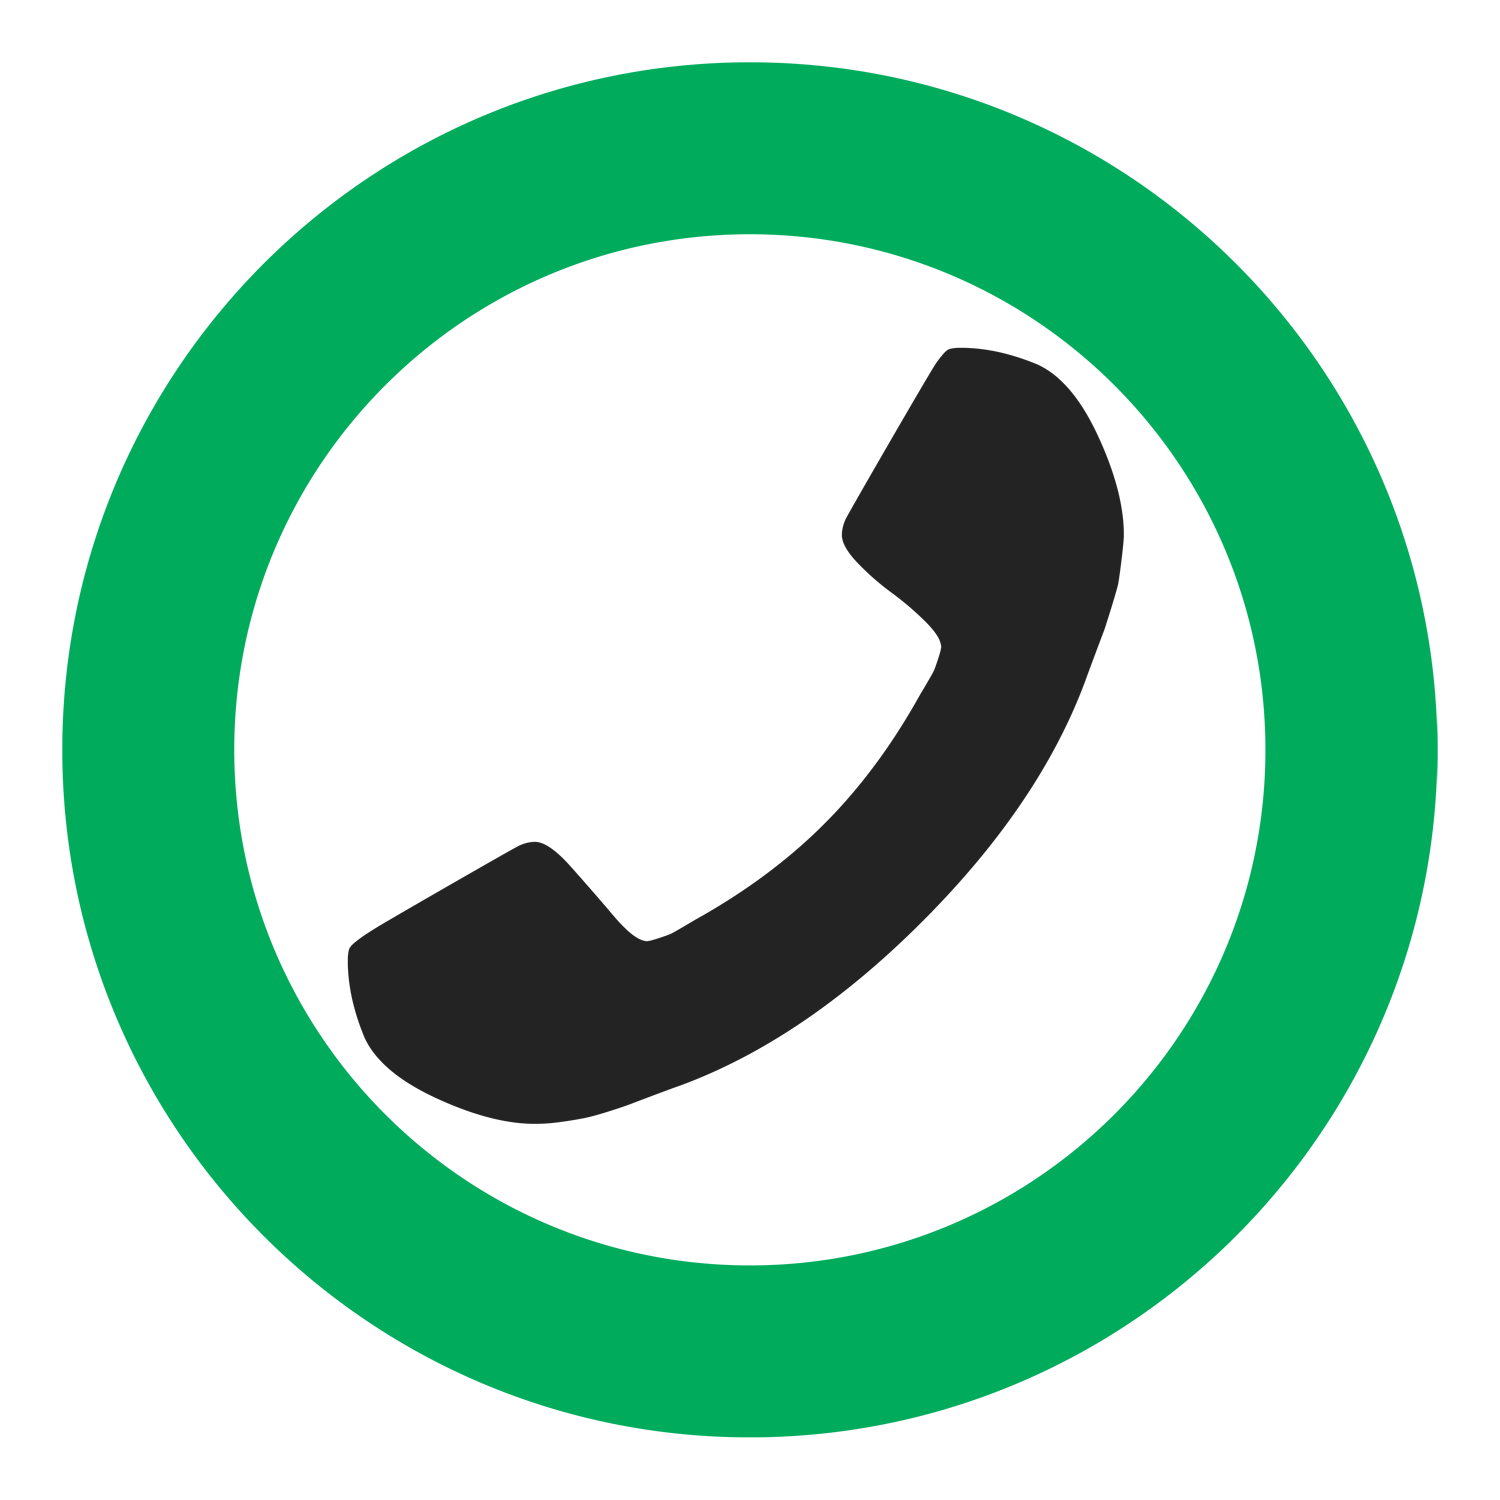 Green phone icon png. Icons vector free and